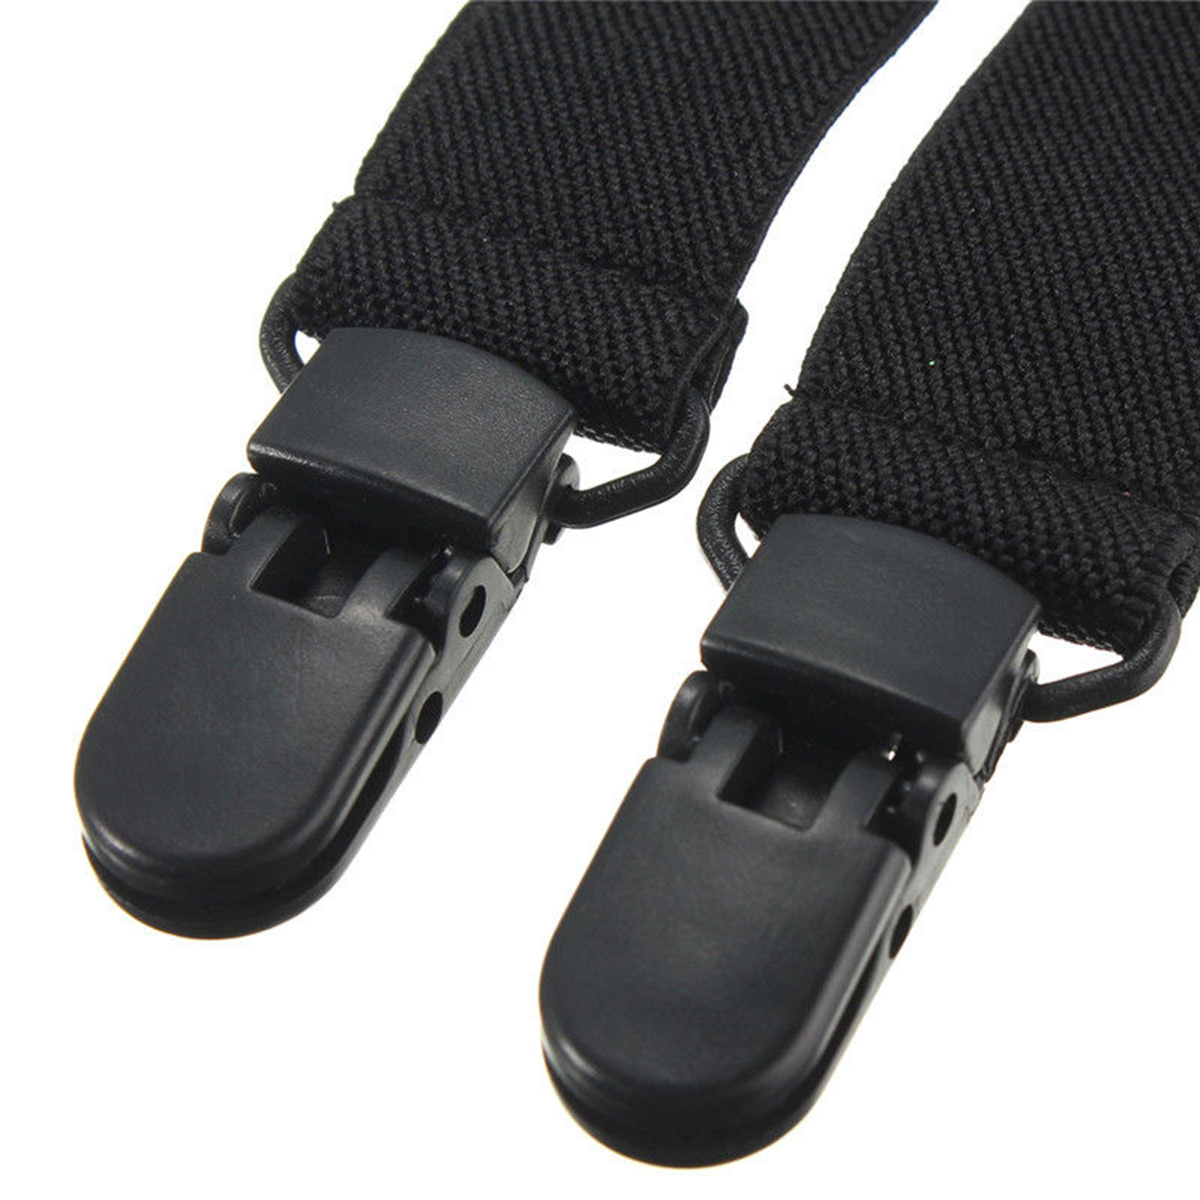 2Pcs Pants Clips Stirrups Adjustable Elastic Motorcycle Bike Leg Boot Straps Plastic Polyester-coon Material Boot Clips